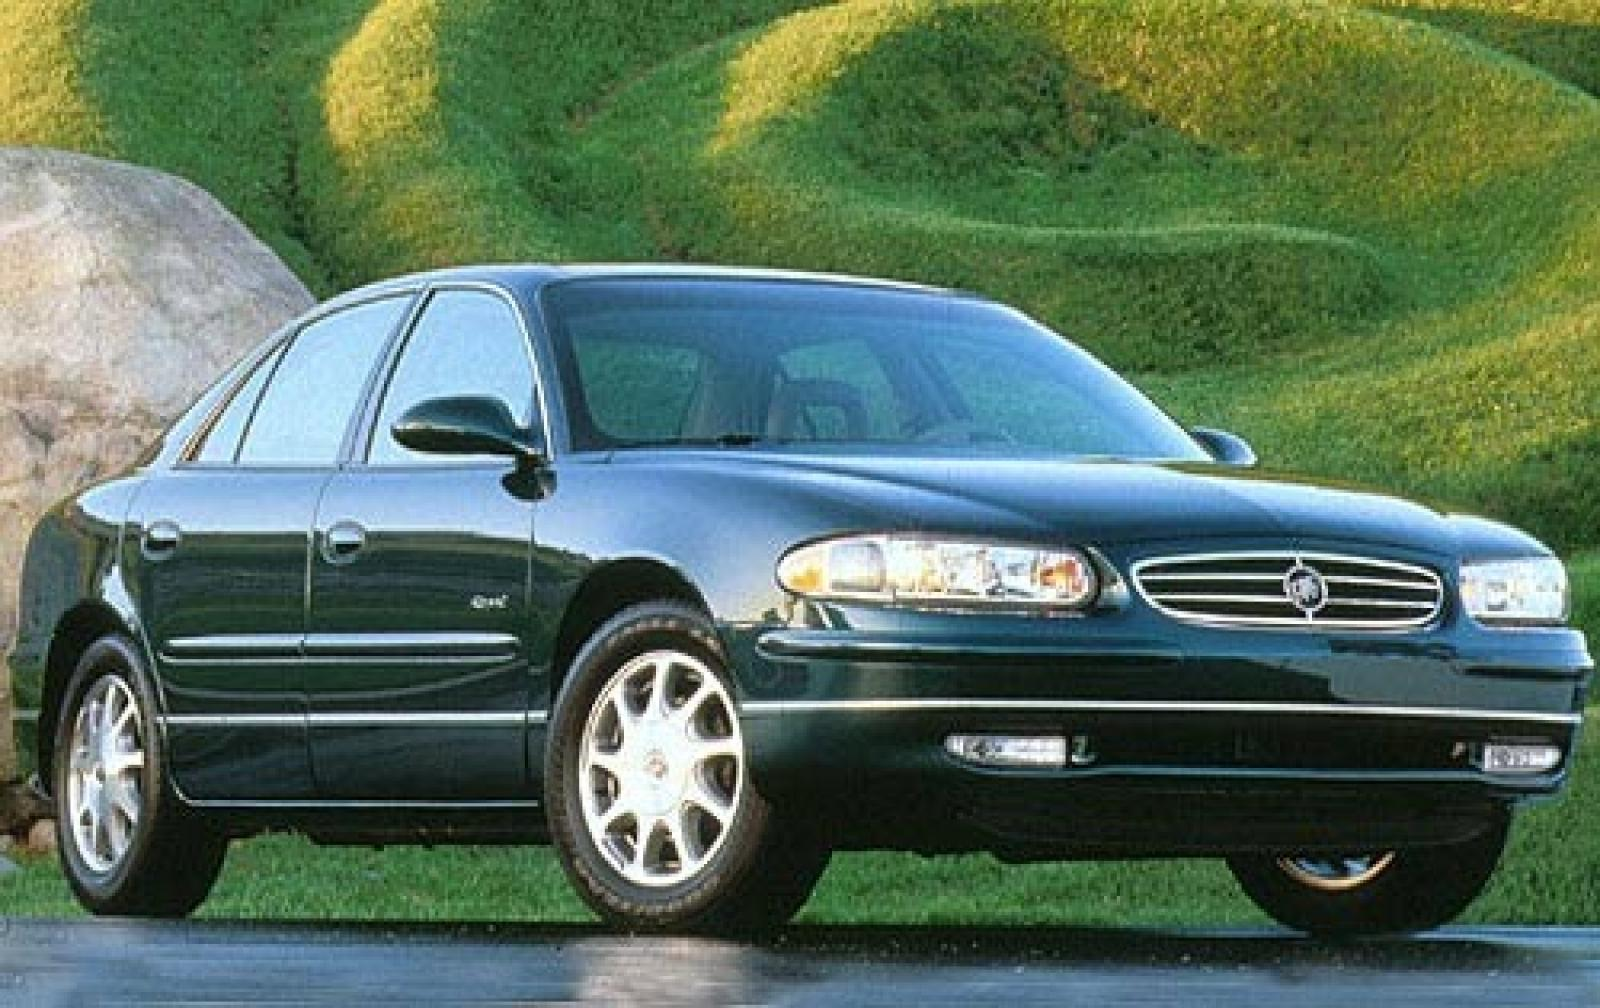 1998 buick regal information and photos zombiedrive buick gallery publicscrutiny Choice Image